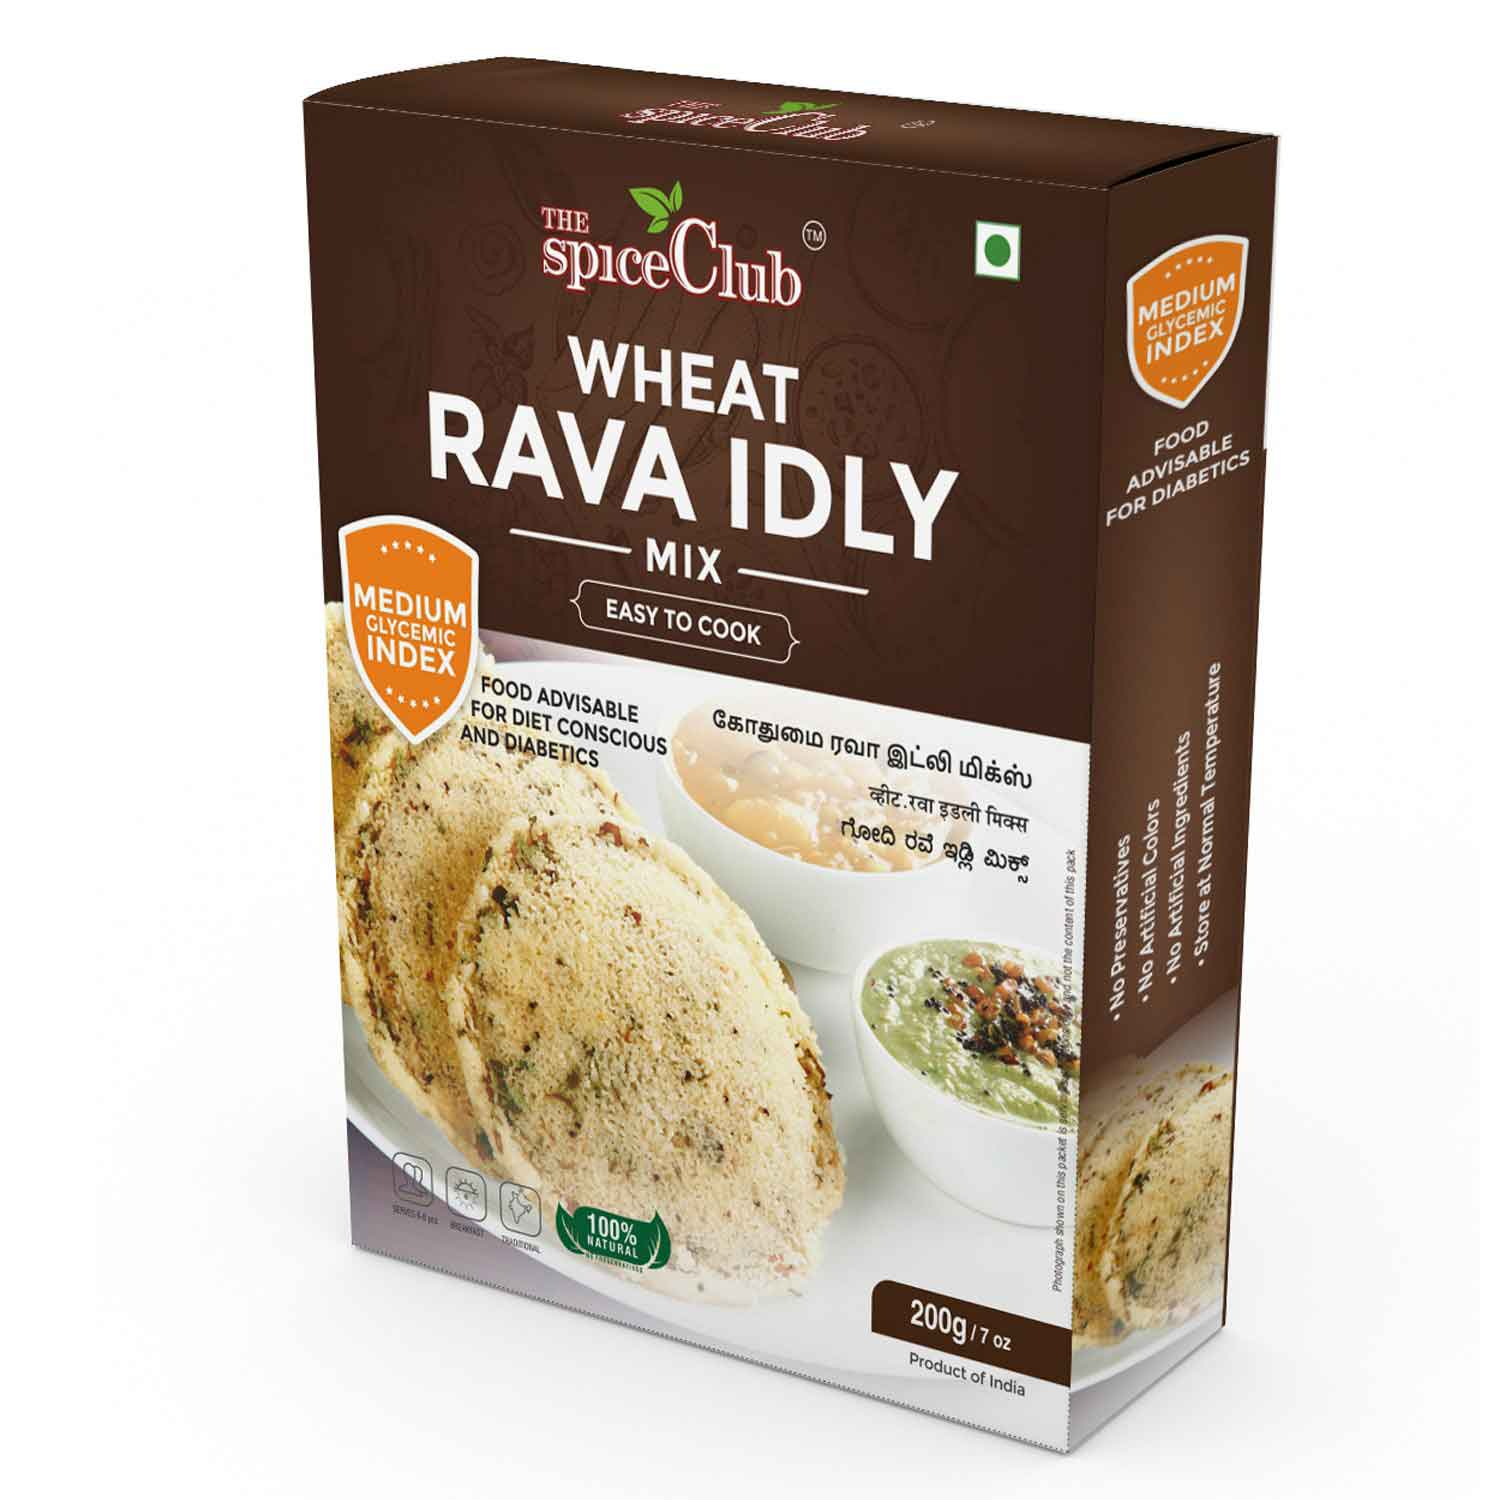 Wheat Rava Idly Mix